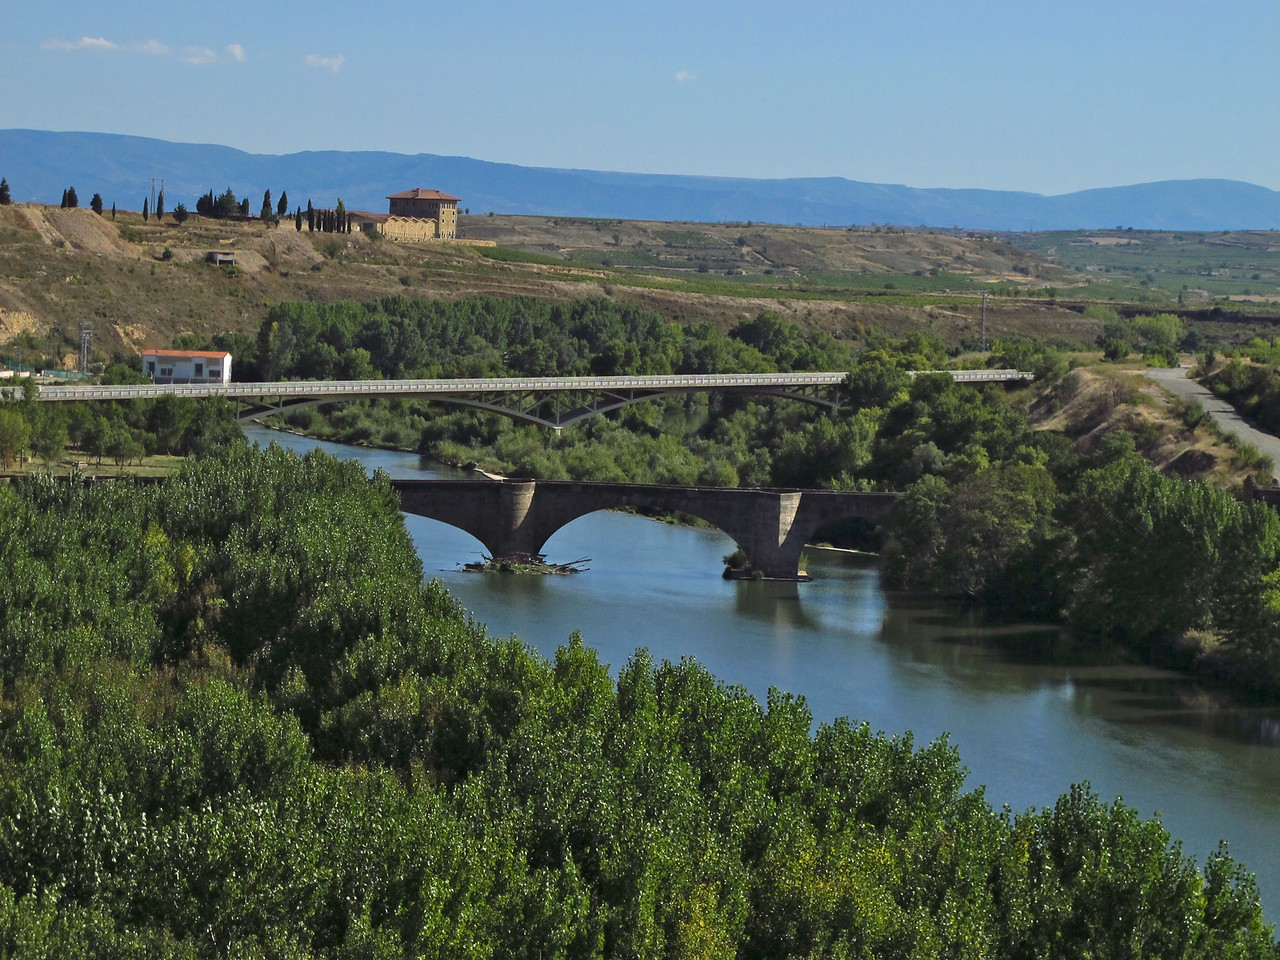 Between San Vicente de Seniorio and Briones is a medieval bridge. It defended the crossing of the River Ebro from the border with Navarra and Castile. It possibly dates back to 1172.  It was rebuilt at the end of the 16th century. On March 9th 1783 two of the arches collapsed completely, and for transit purposes a cable ferry was built between the two banks, delaying reconstruction of the bridge for over 60 years. Because of its structural problems, heavy goods vehicles were prohibited from crossing the bridge several years ago, and in 1997 a new bridge (behind the bridge) was opened.